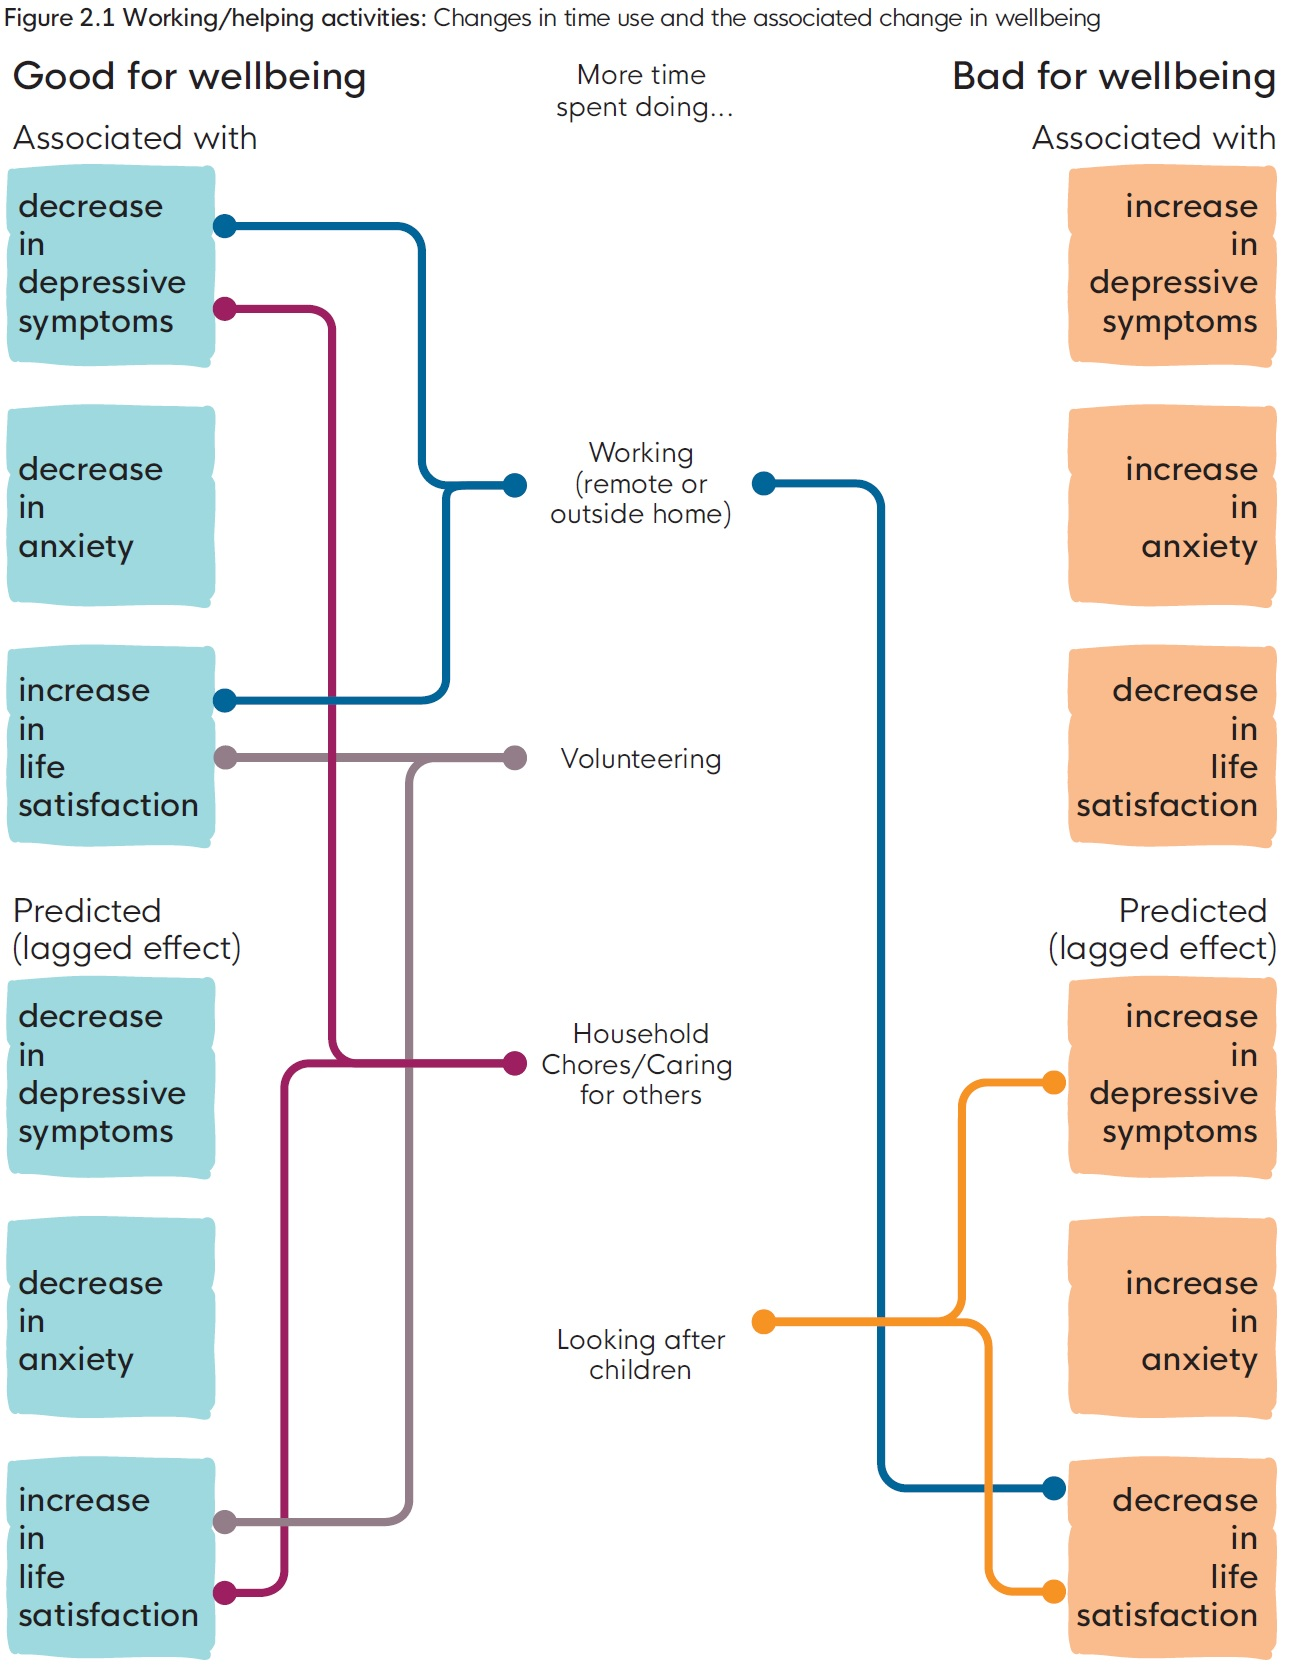 Figure 2.1 Working/helping activities: Changes in time use and the associated change in wellbeing